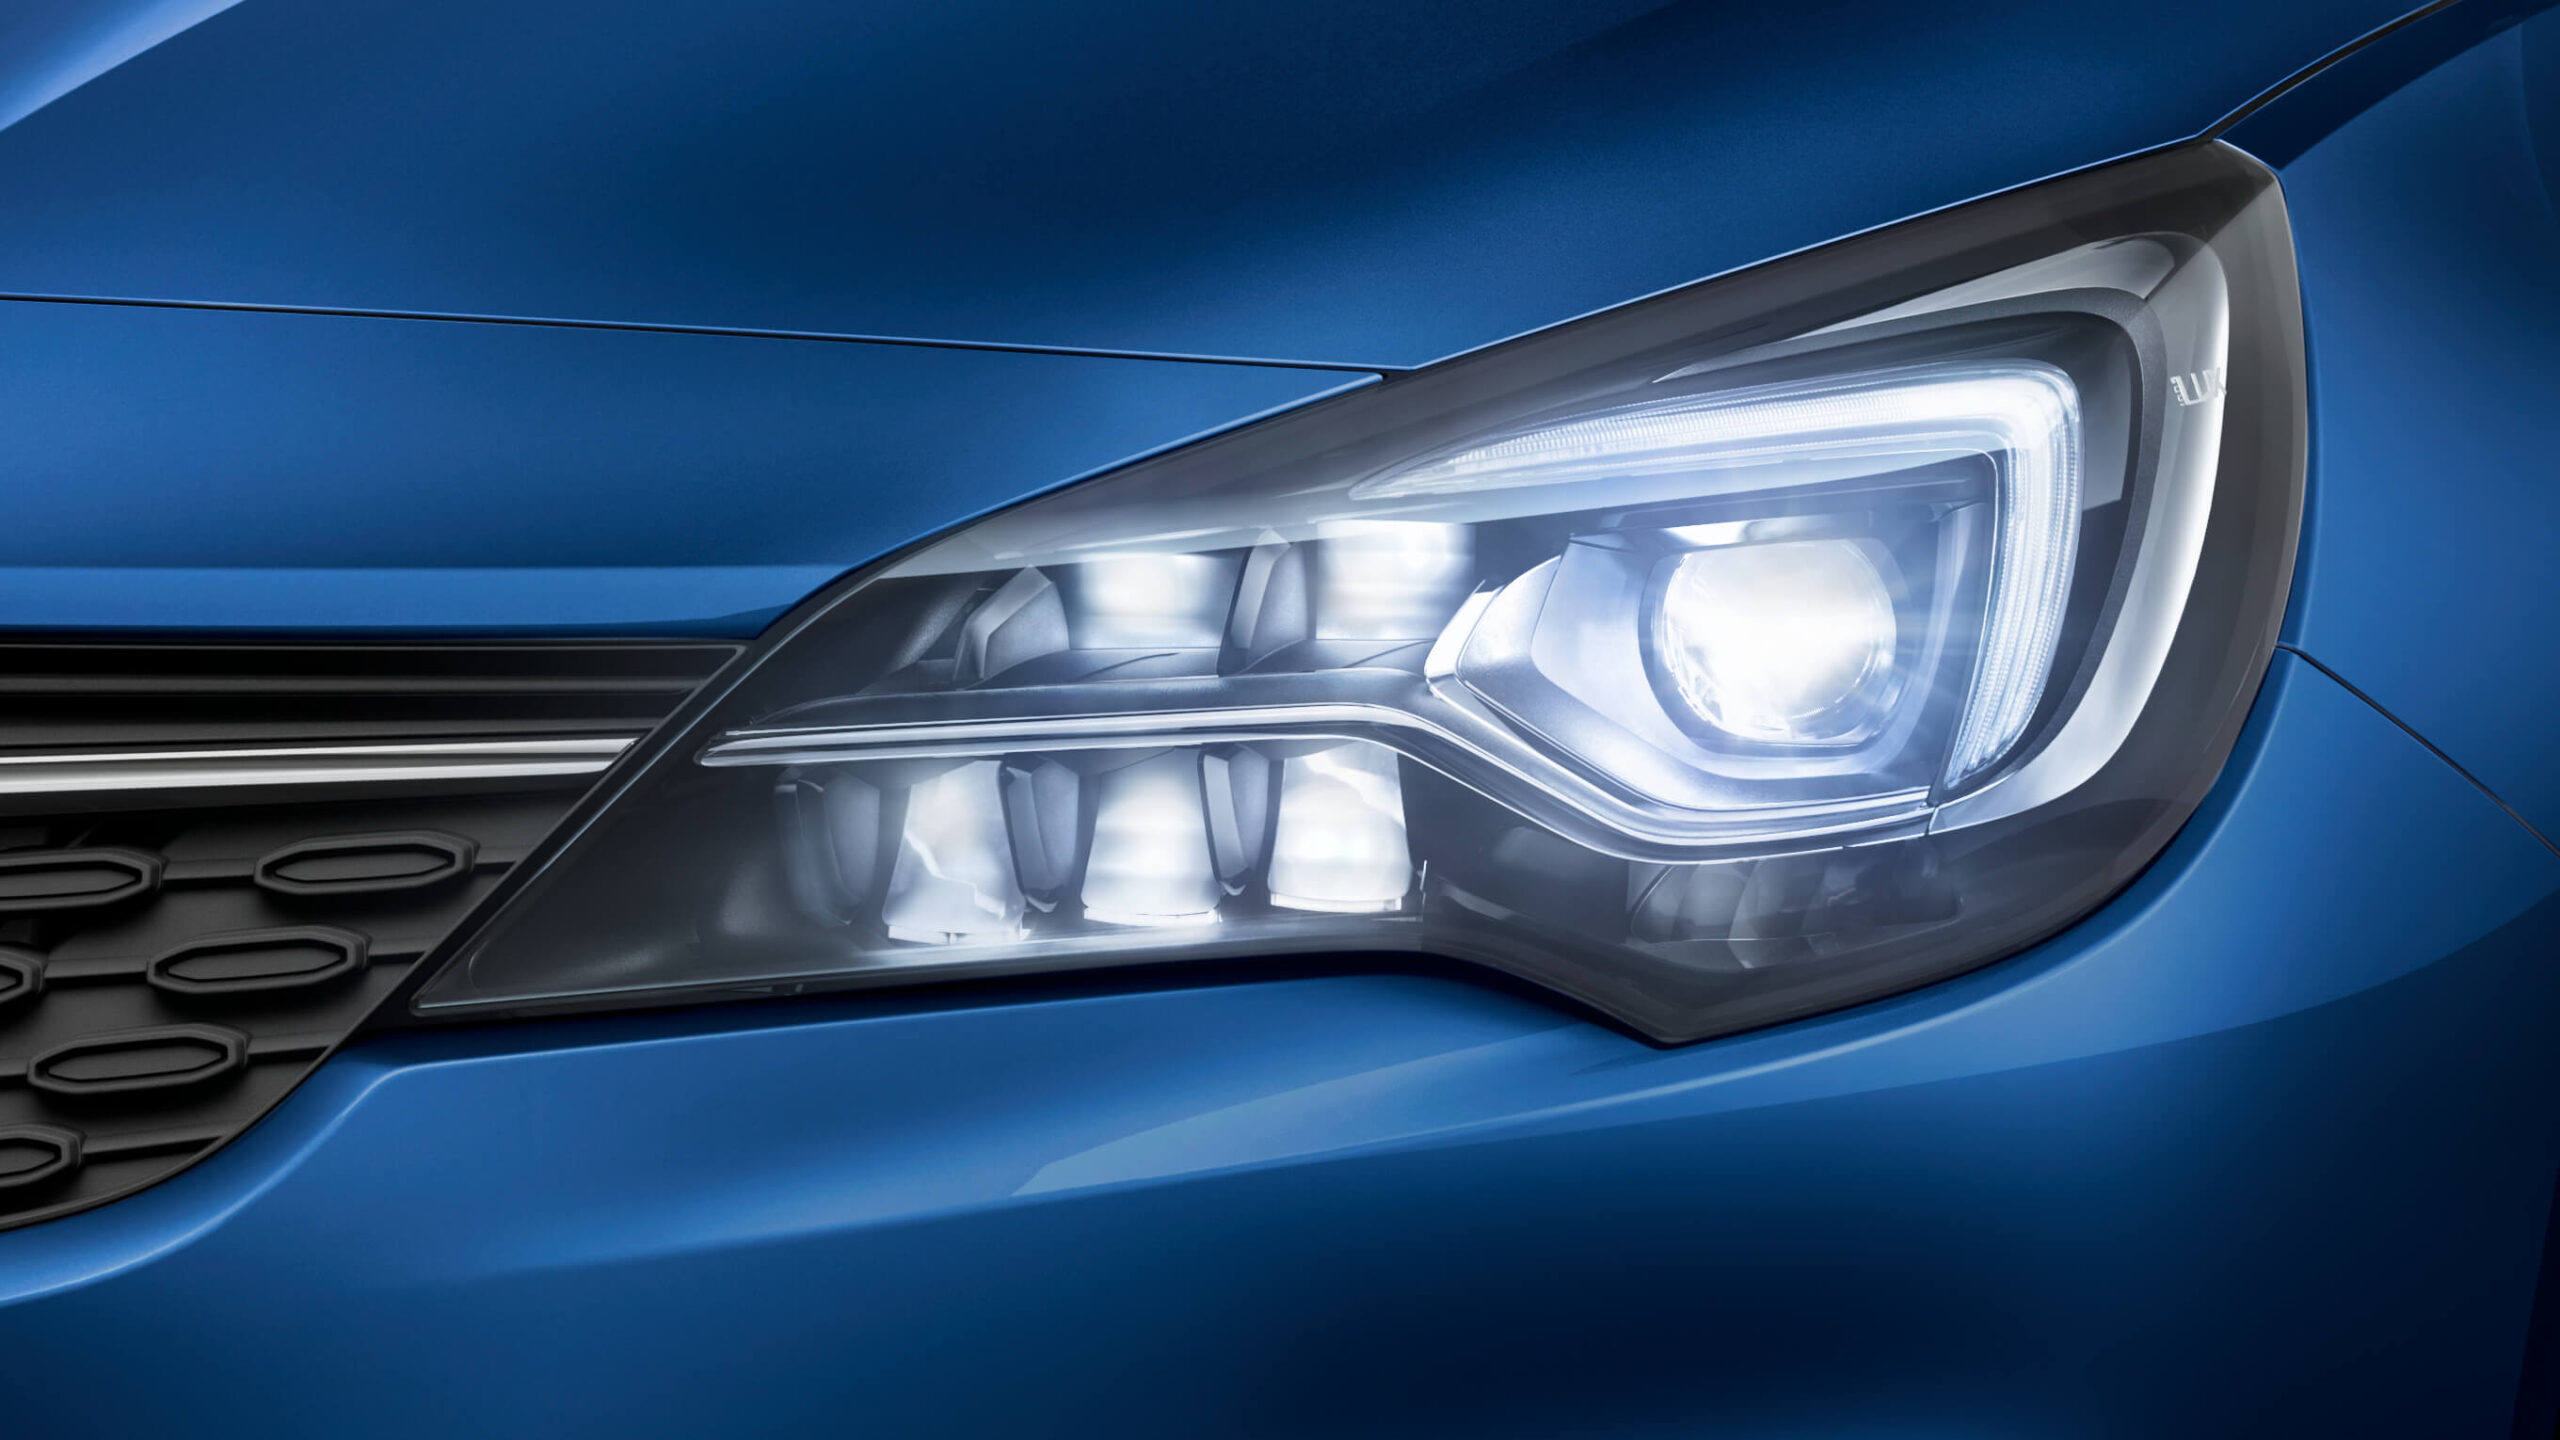 Opel_Astra_LED_Matrix_Light